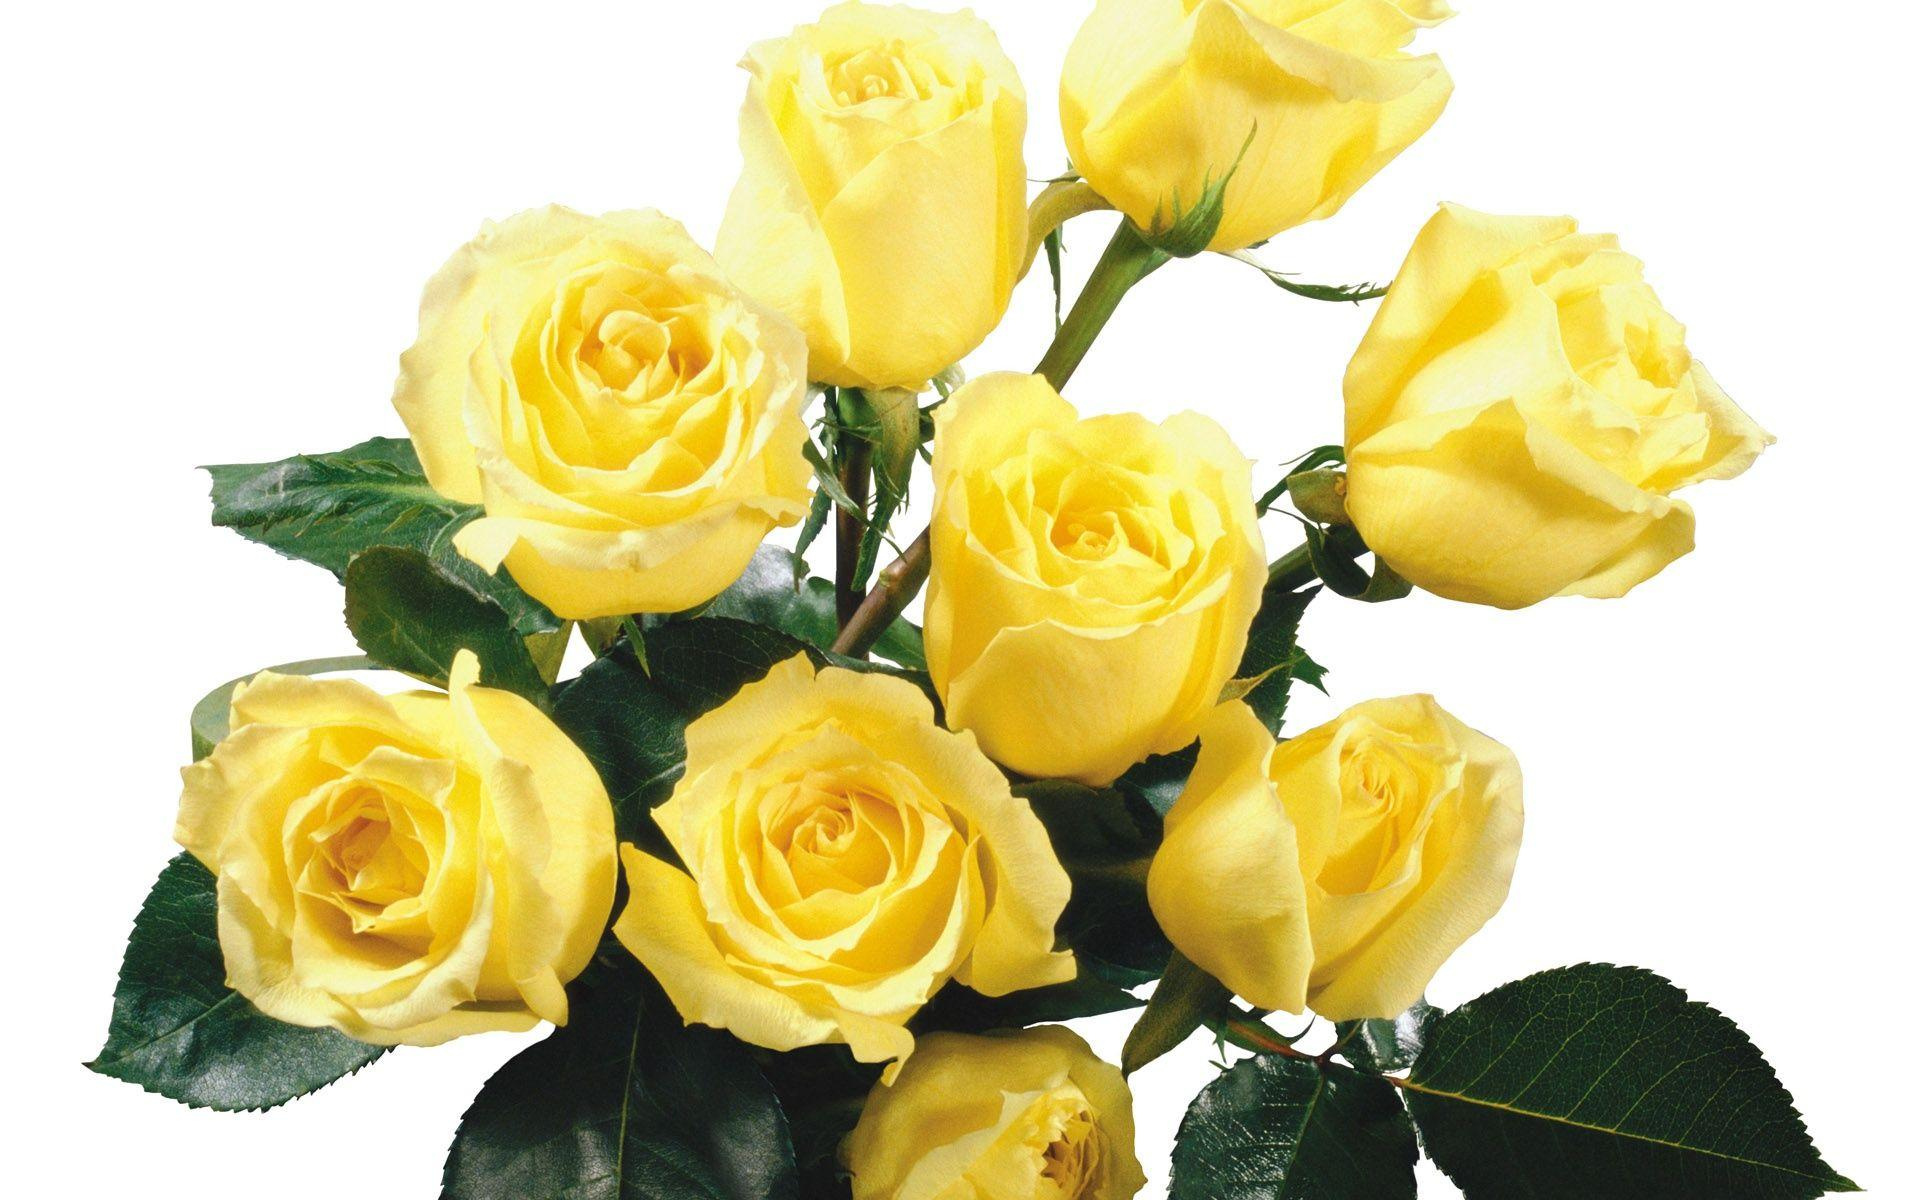 wallpaper of yellow roses - photo #13